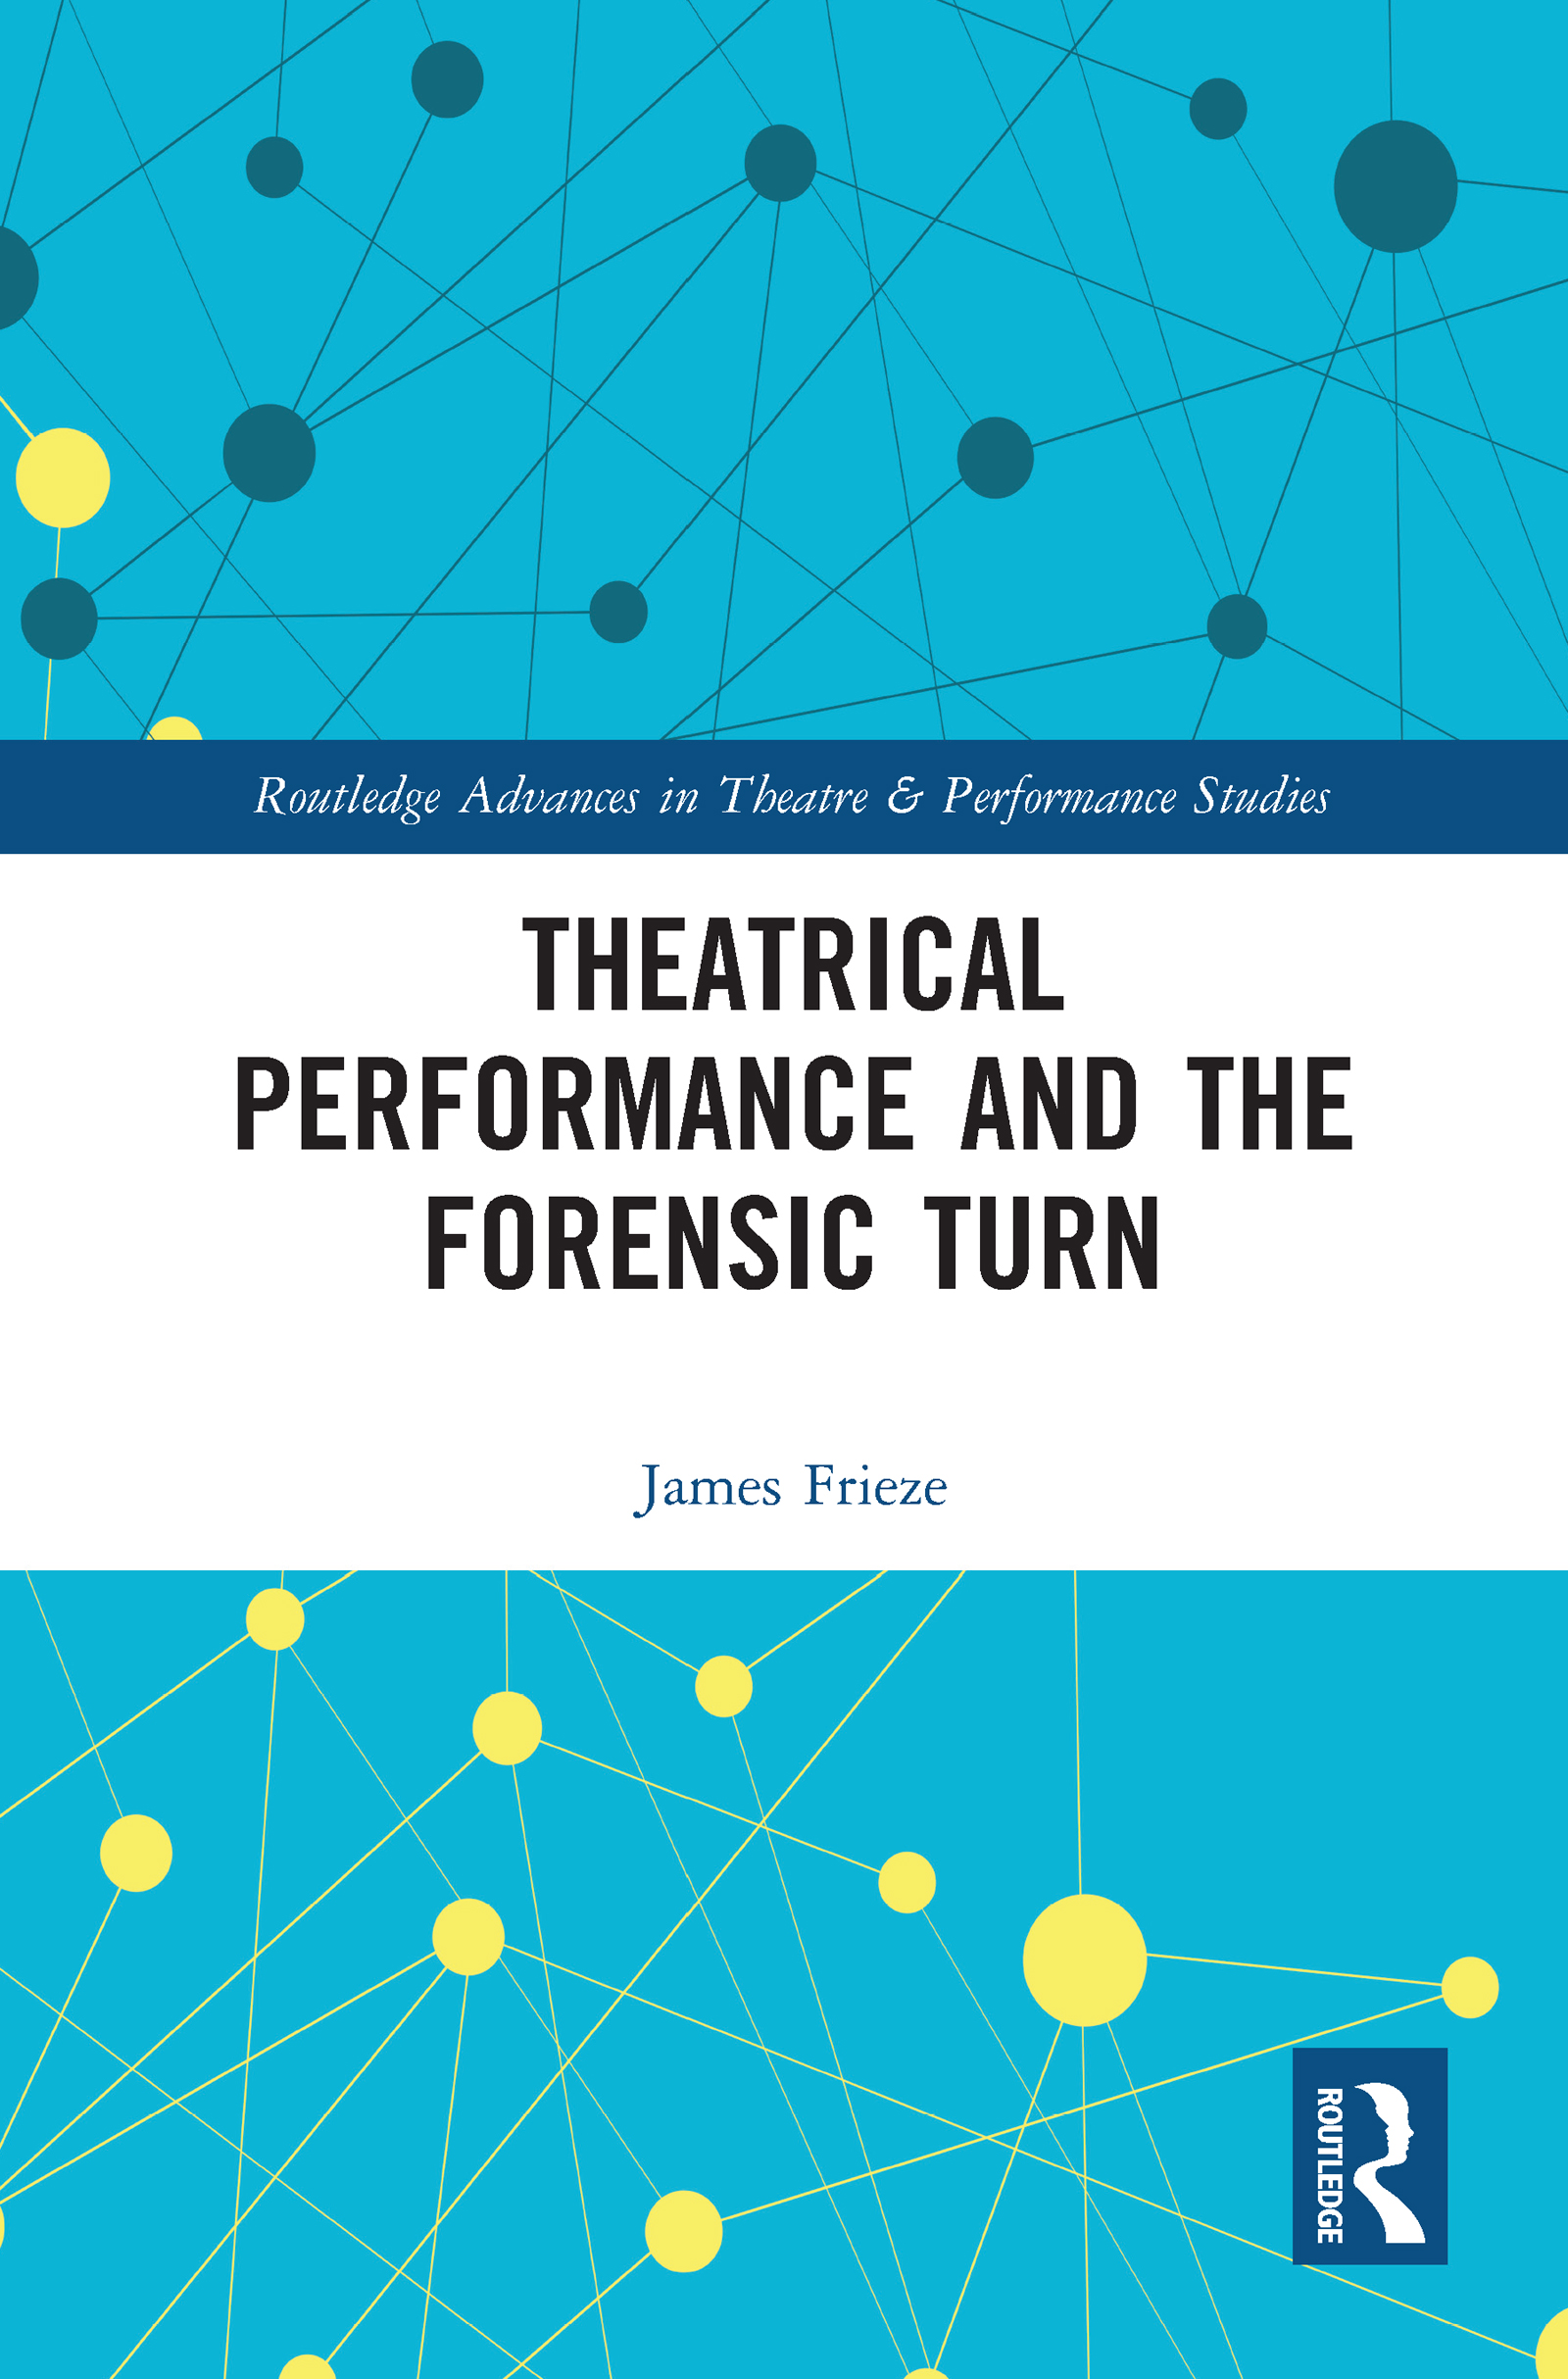 Theatrical Performance and the Forensic Turn